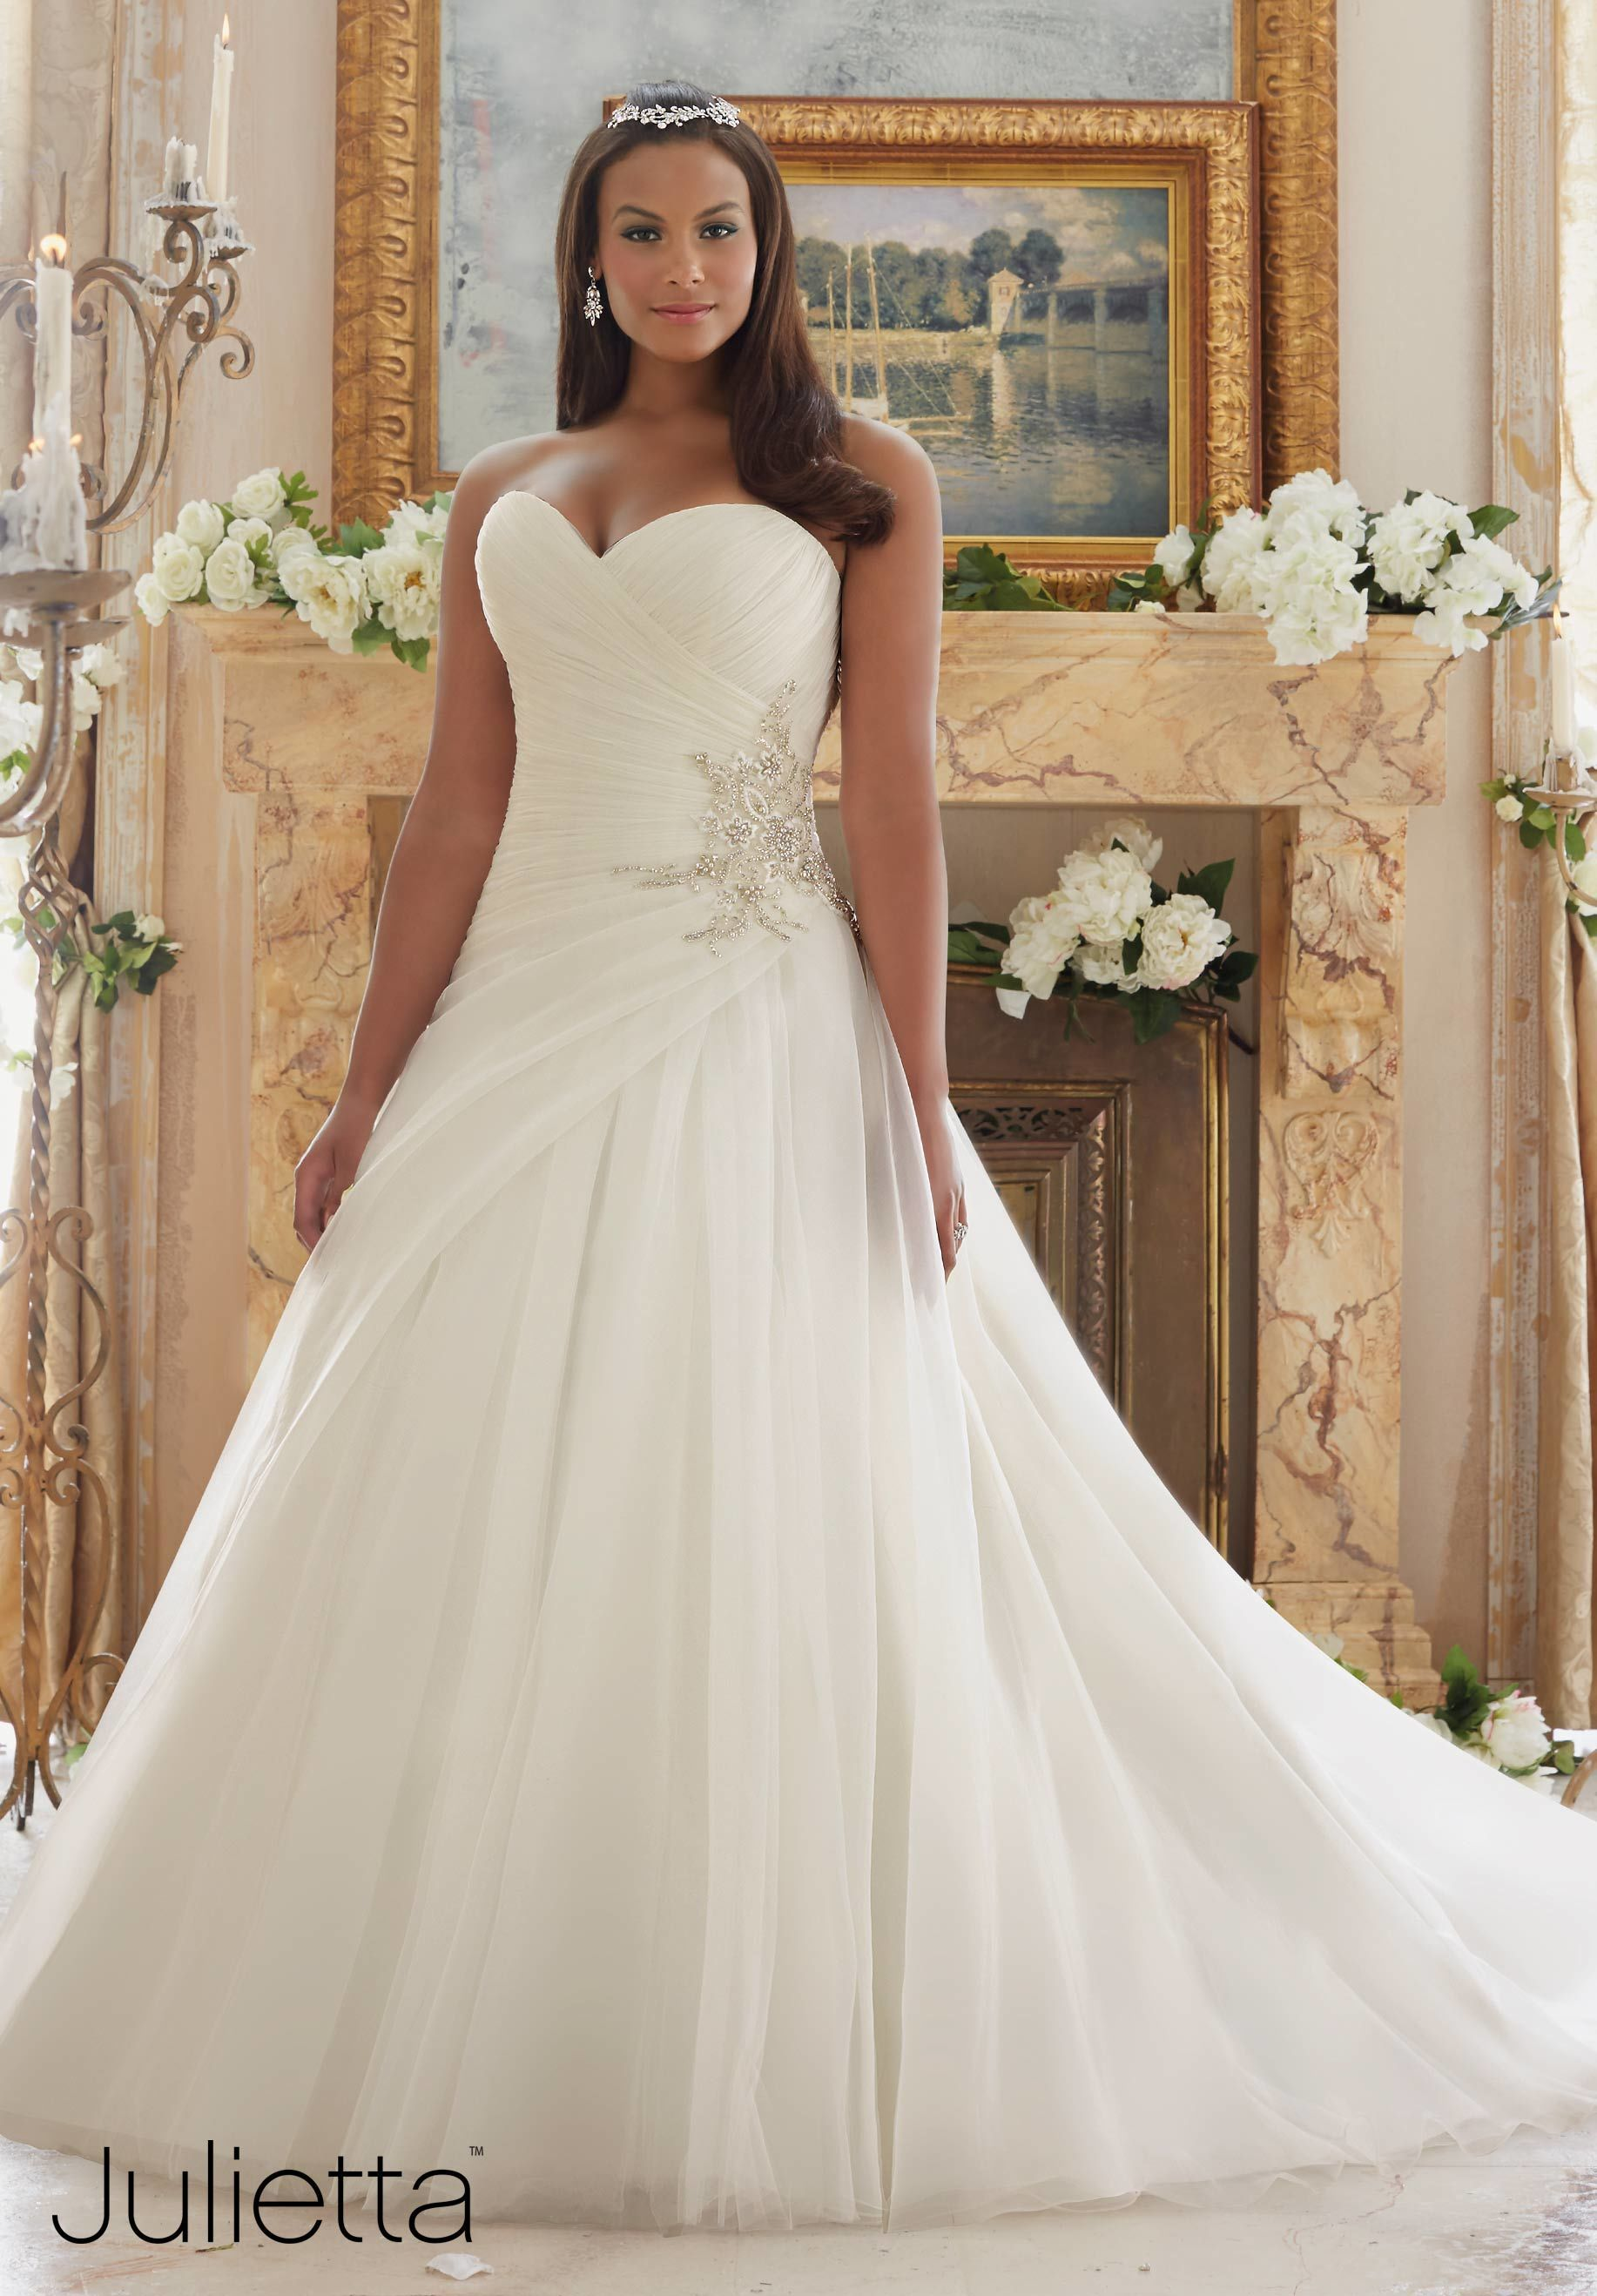 wedding dresses for curvy women On curvy women wedding dresses